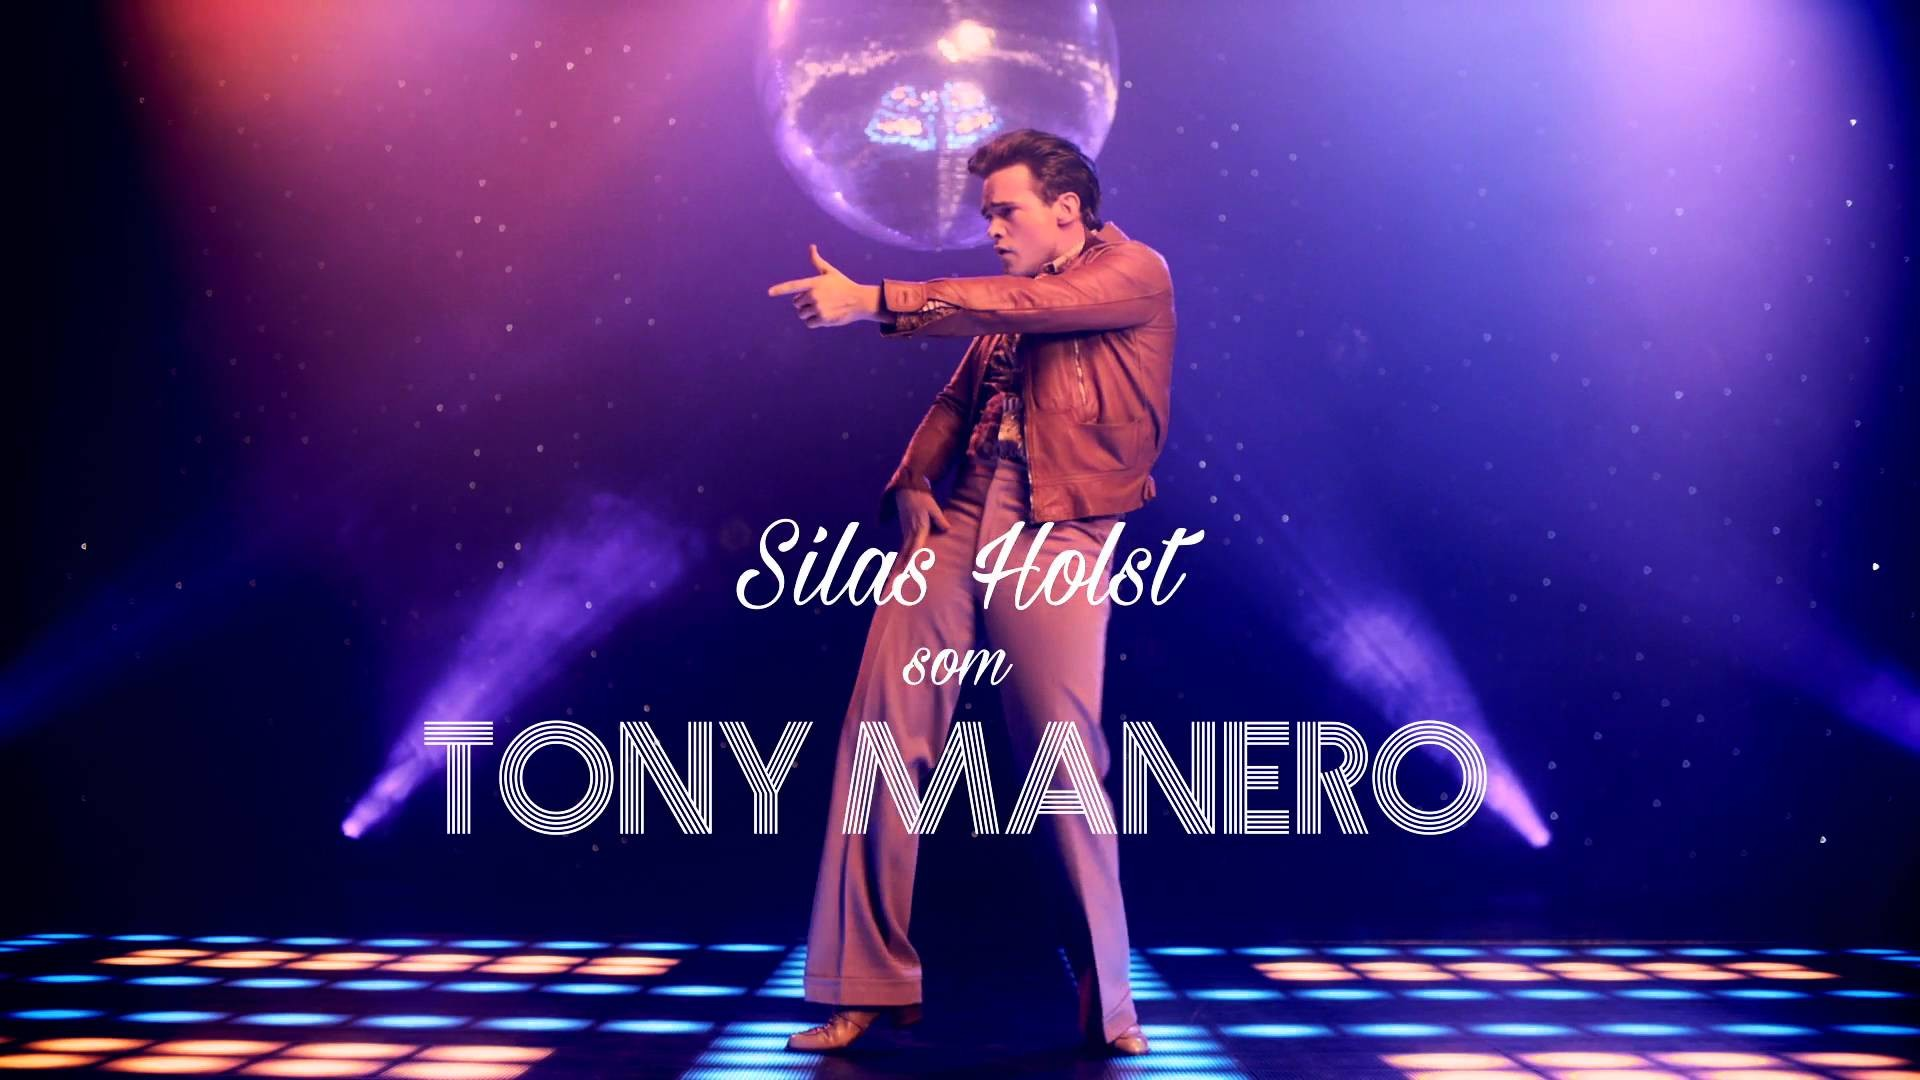 1920x1080 Saturday Night Fever The Musical - Silas Holst